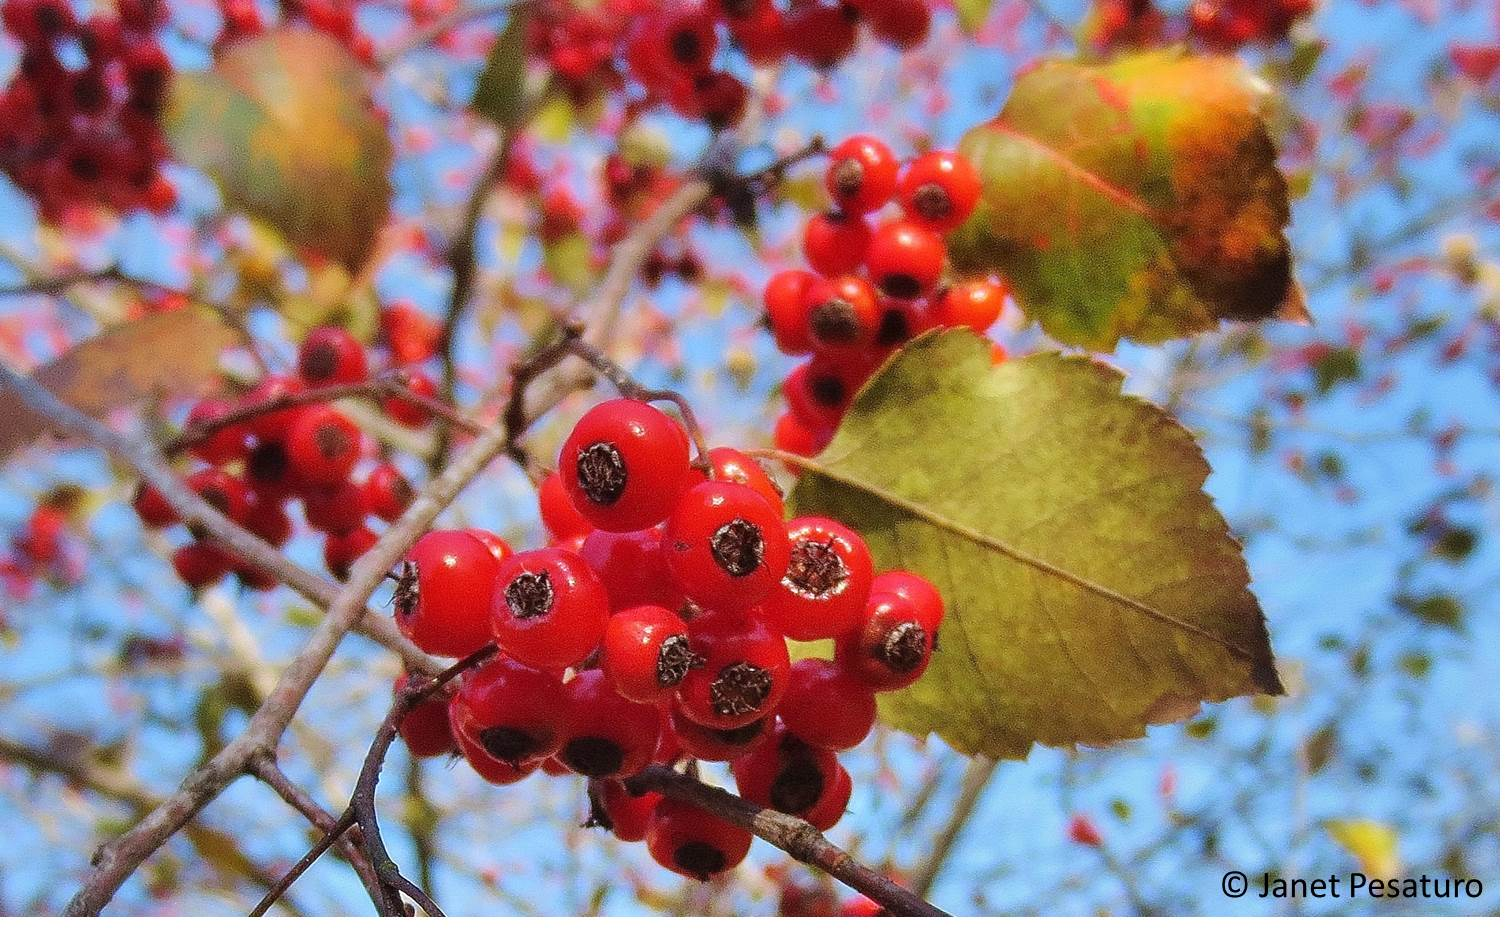 Hawthorn berries identify harvest and make an extract